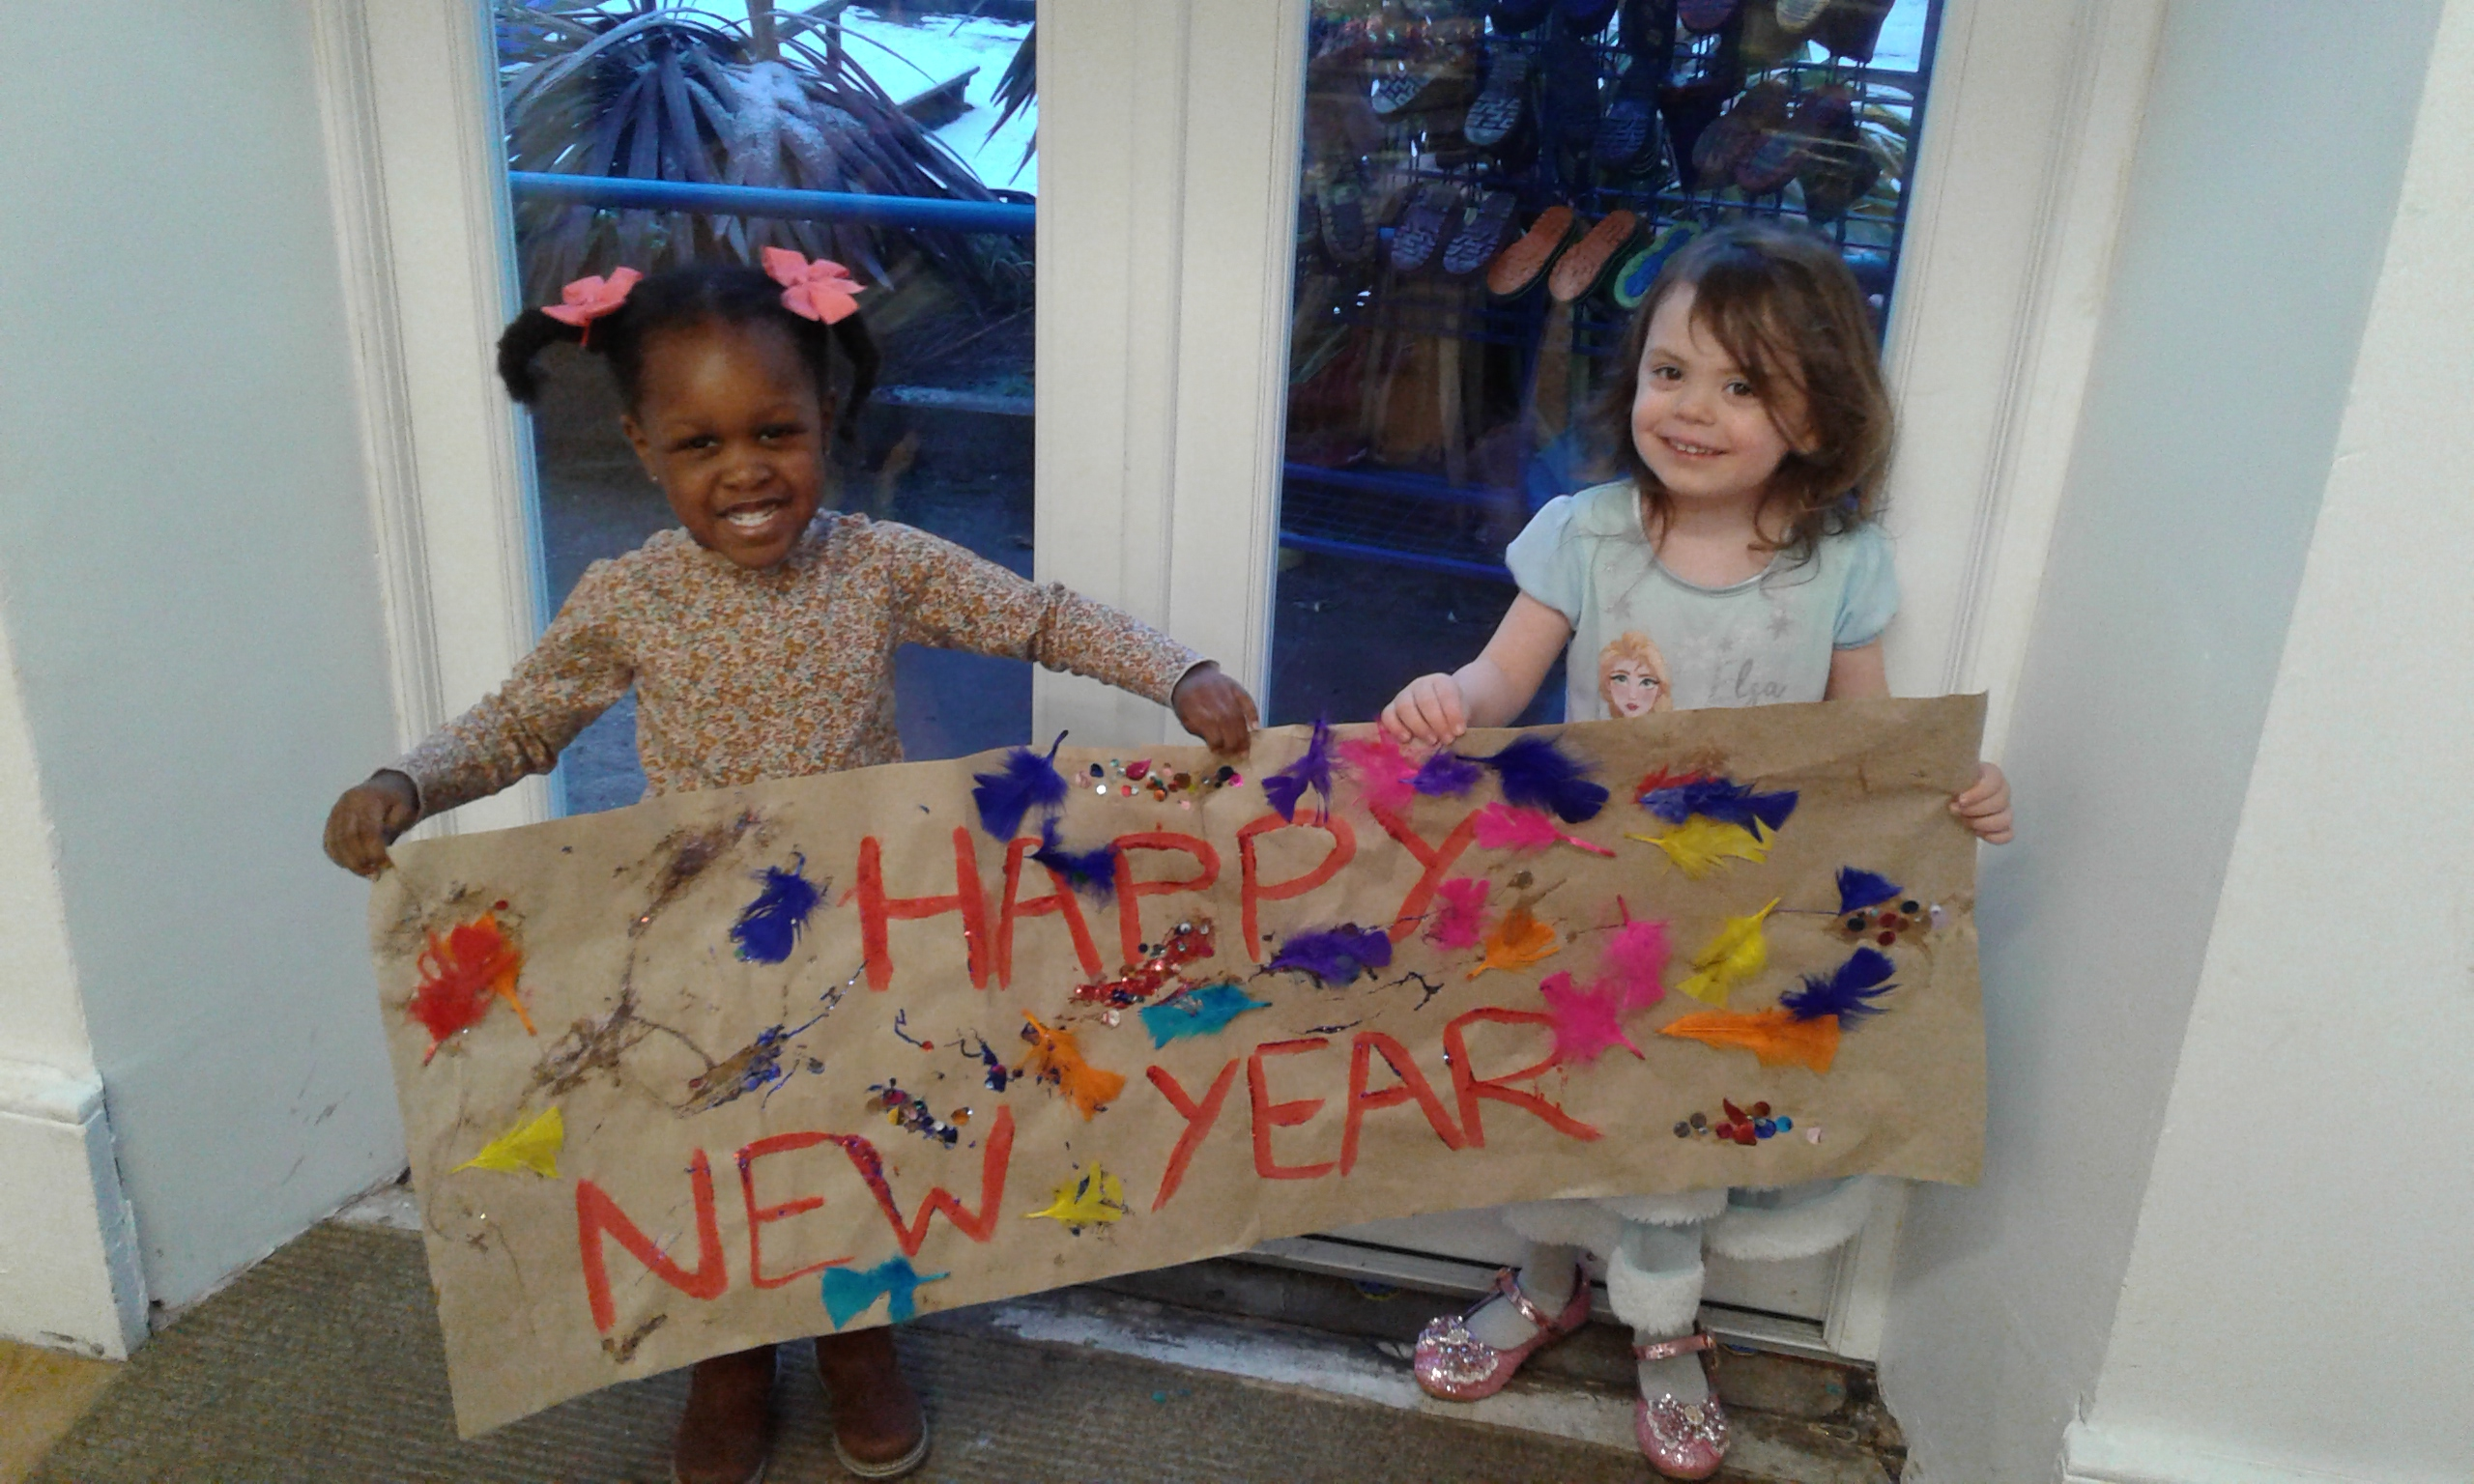 Each room hosted a party to celebrate the New Year